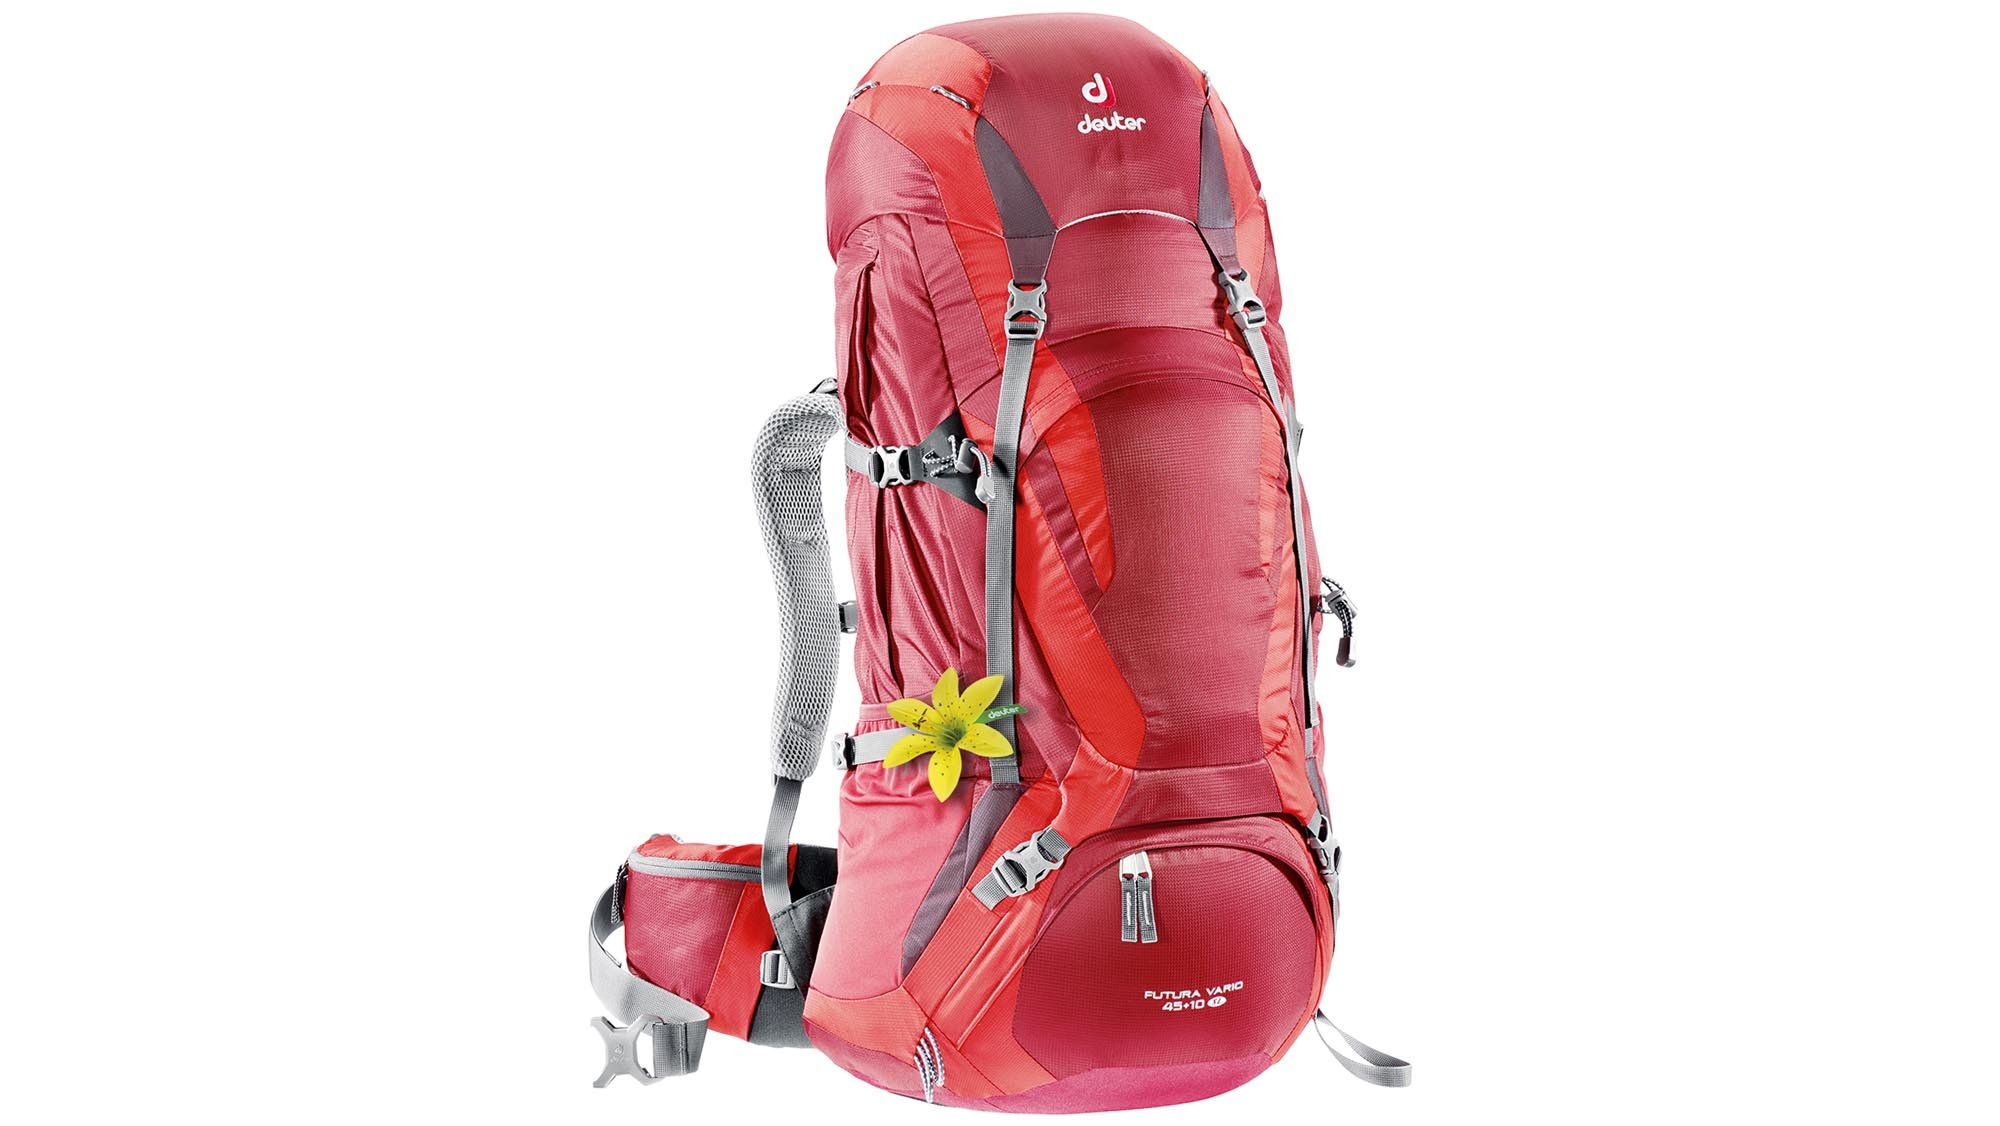 b72dc81048 Deuter s backpacks are designed with a specifically male or female fit